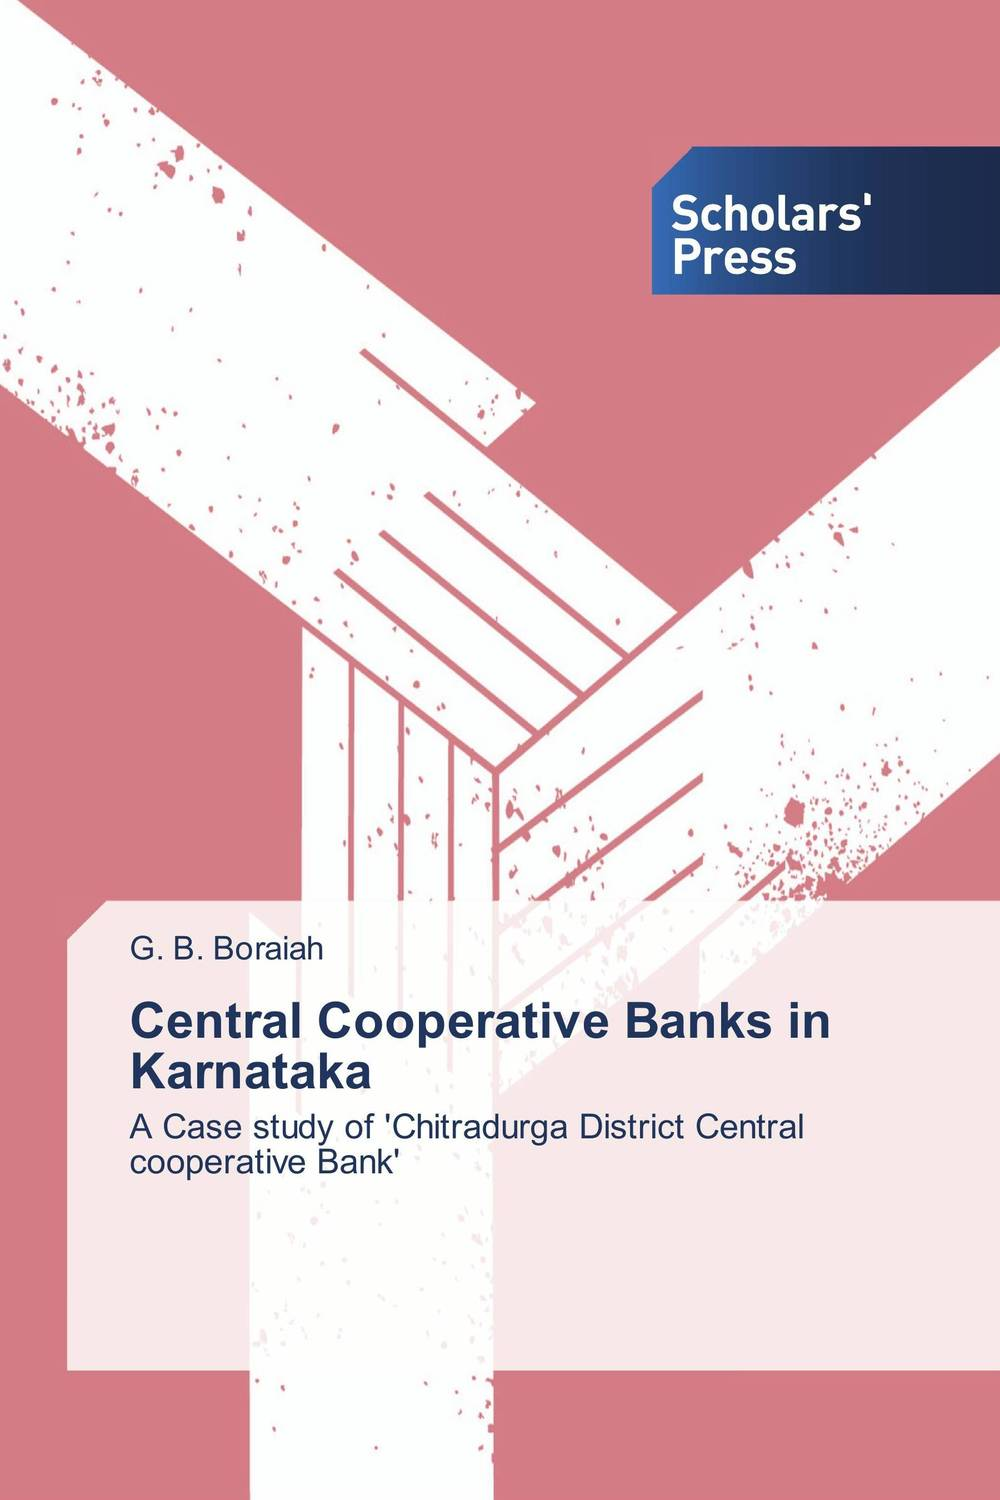 Central Cooperative Banks in Karnataka